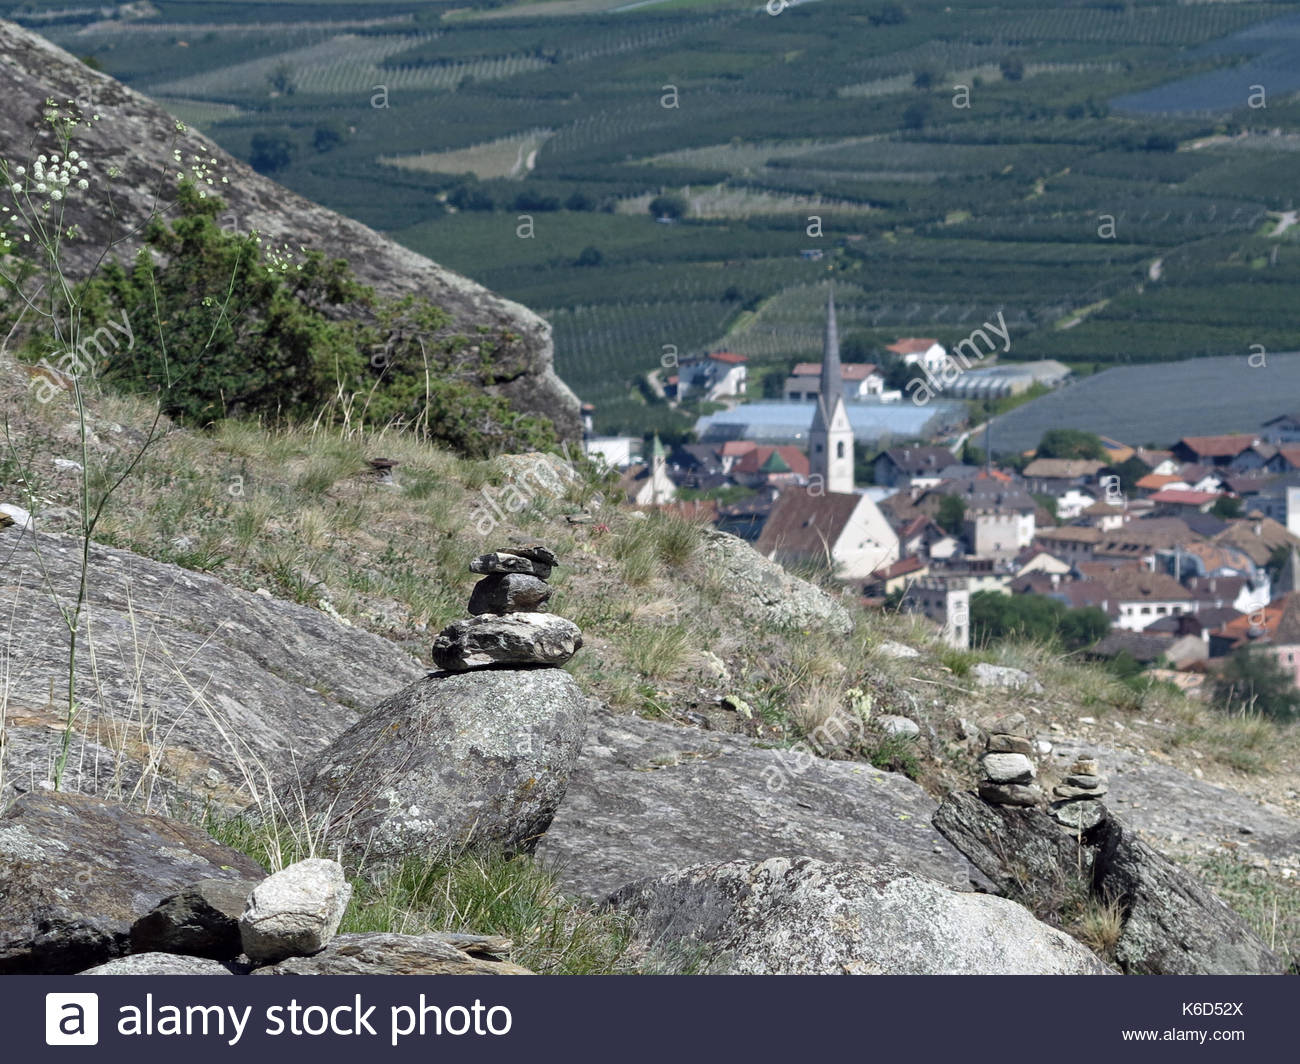 Caves St-Martin The Moselle Valley, Parish Church St Martin Stock Photos & Parish Church St Martin ...